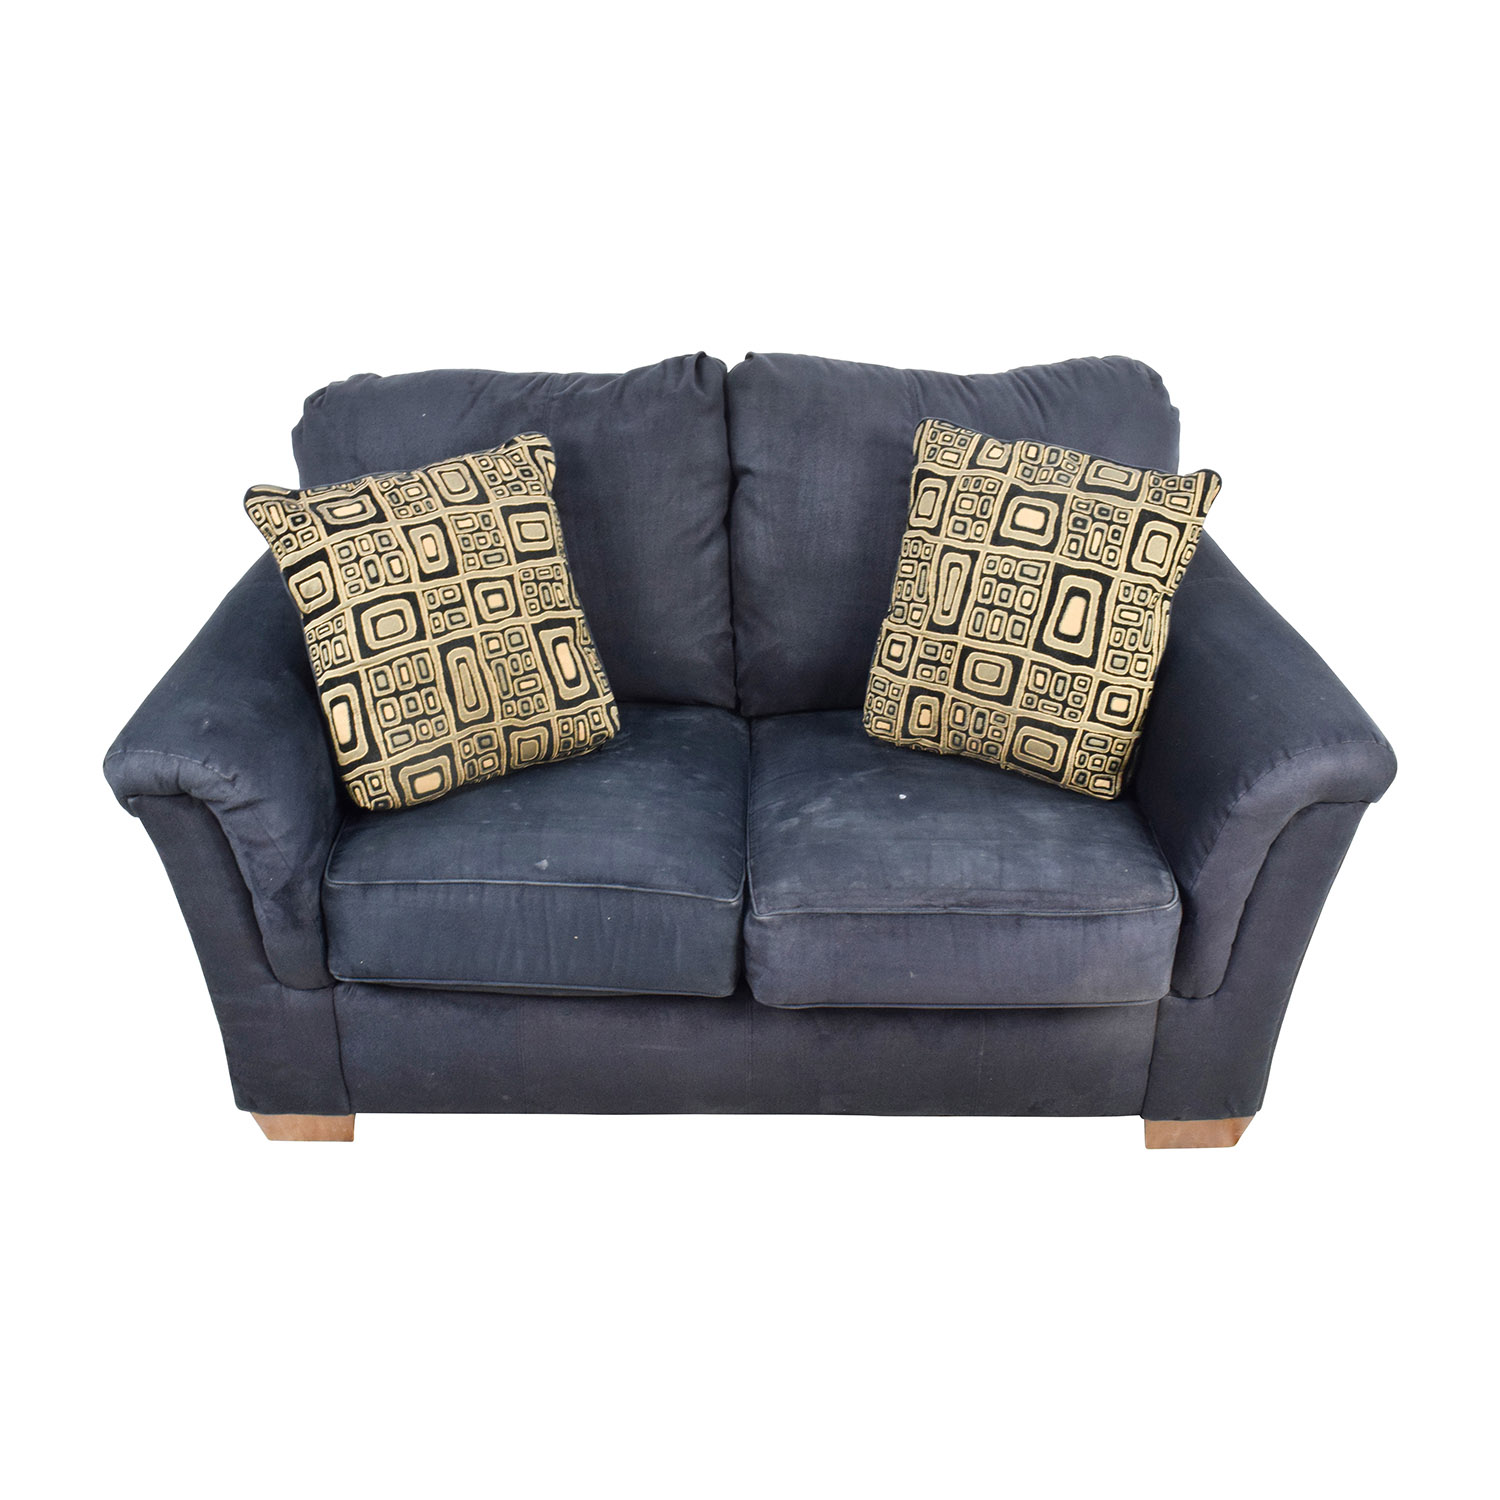 Ordinaire Ashley Furniture Janley Loveseat Sale; Ashley Furniture Ashley Furniture  Janley Loveseat Nj ...